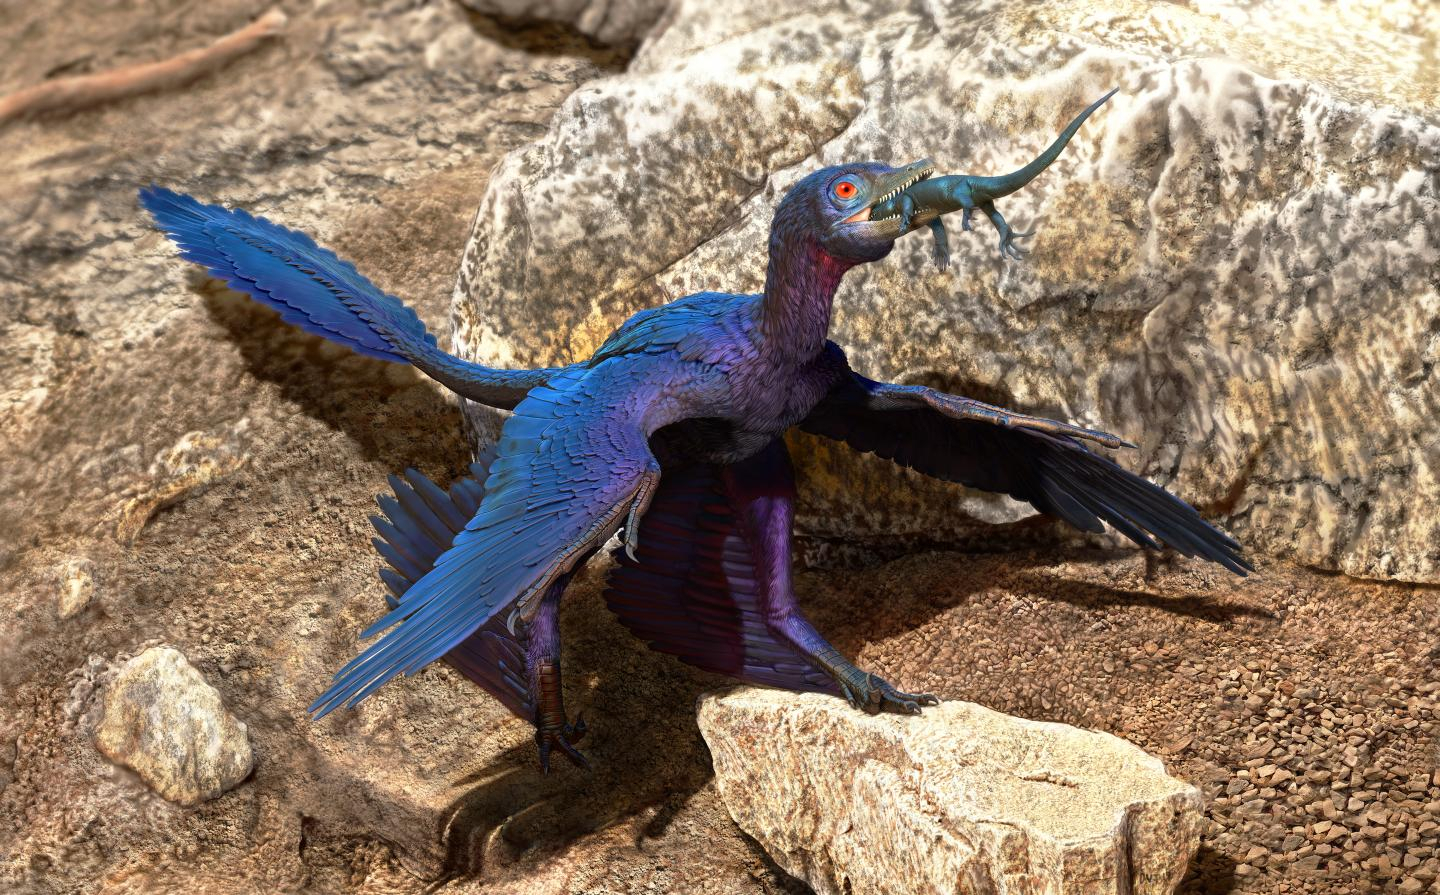 Researchers found new lizard species inside ancient microraptor's stomach